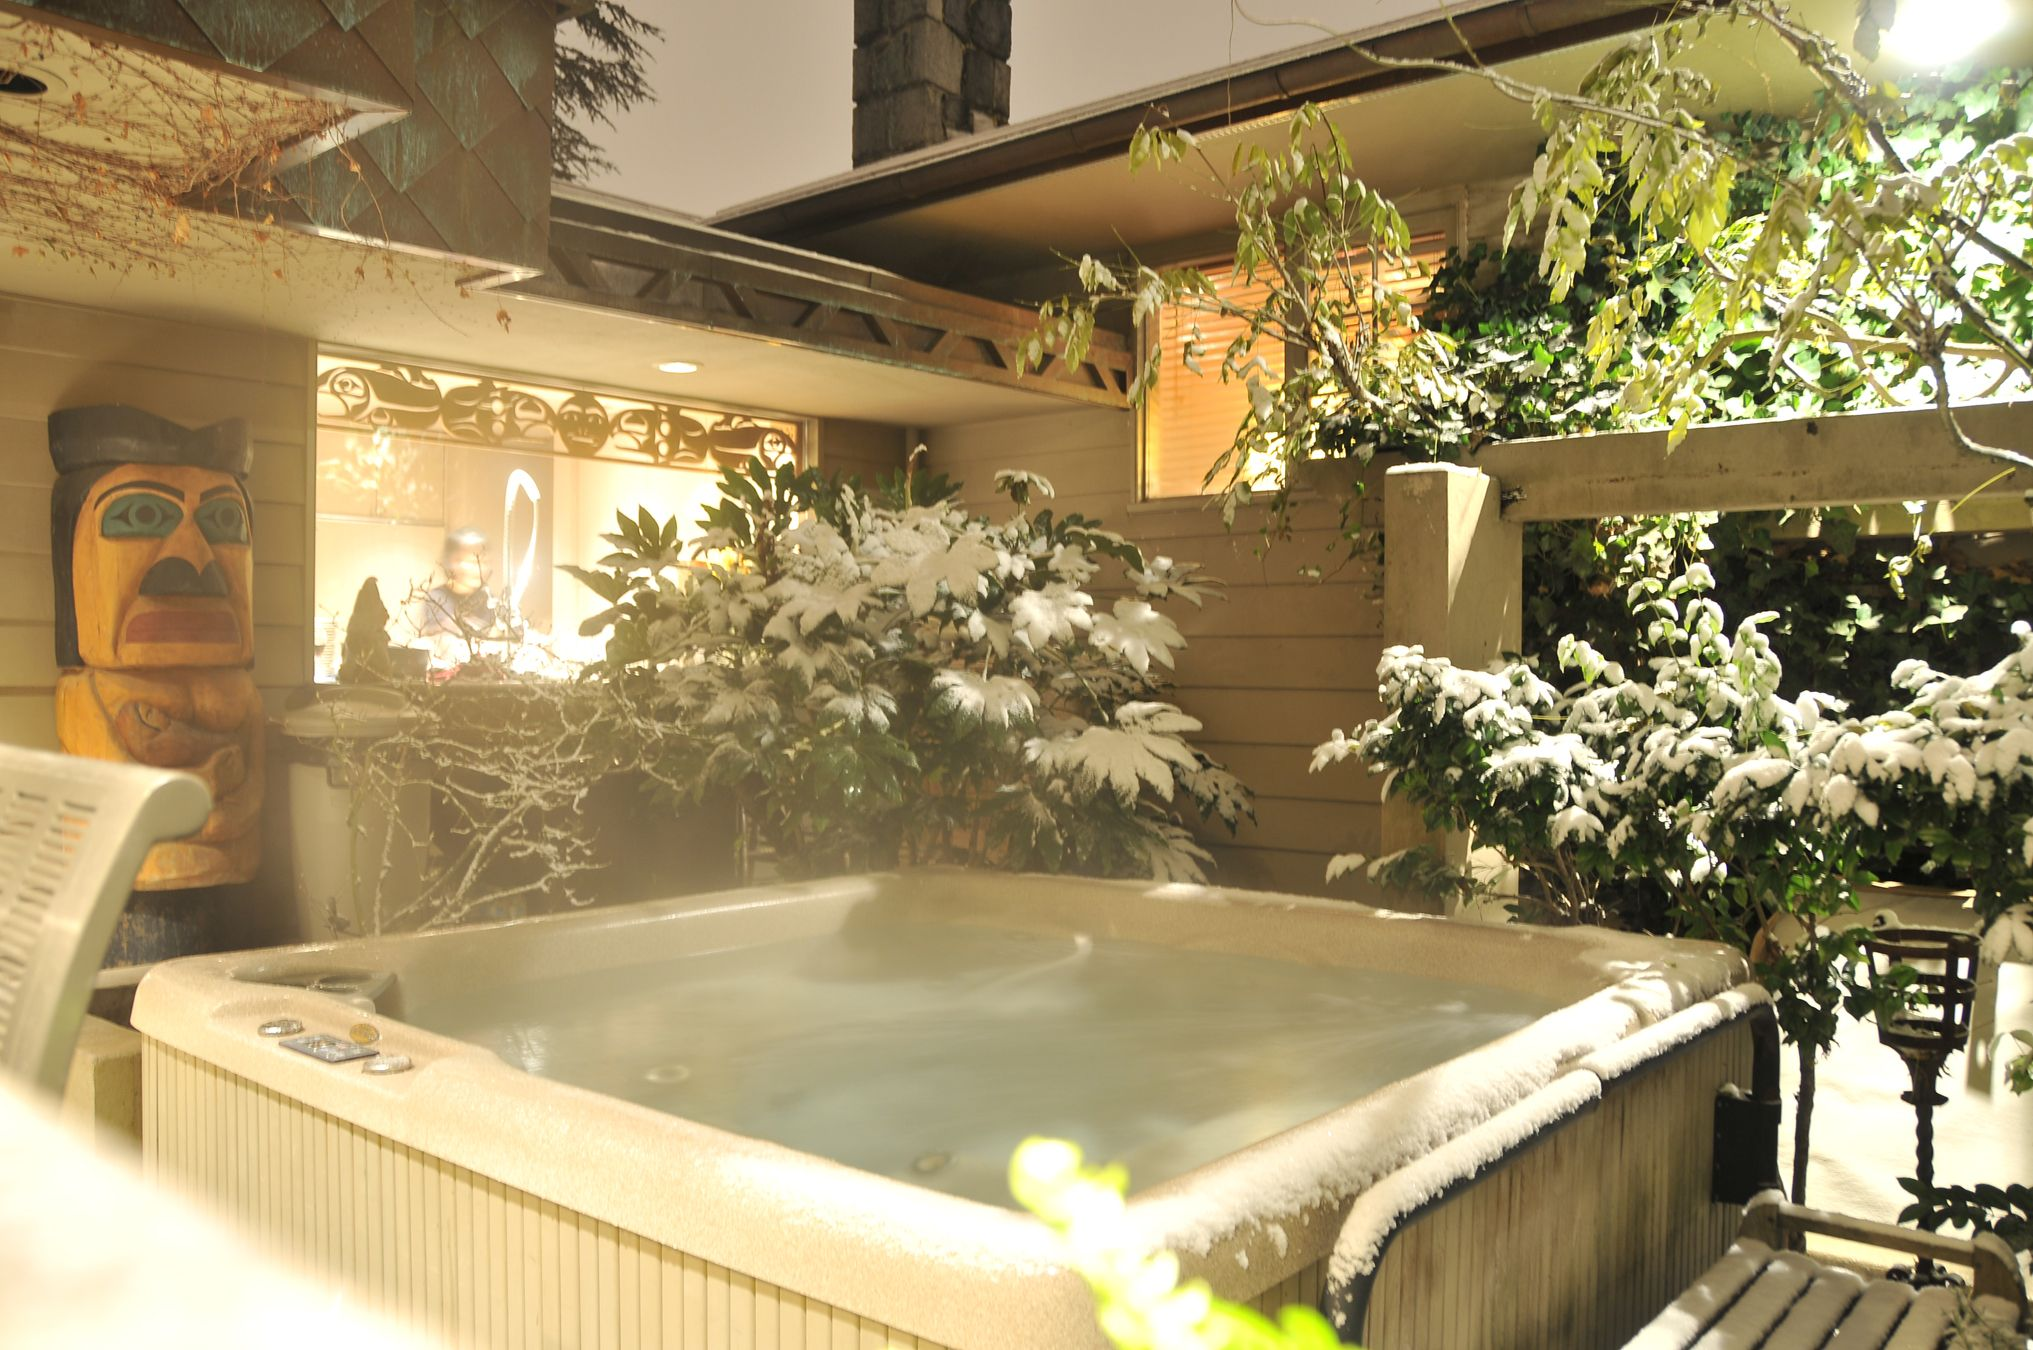 What a beautiful scene! This Beachcomber hot tub draped in snow ...